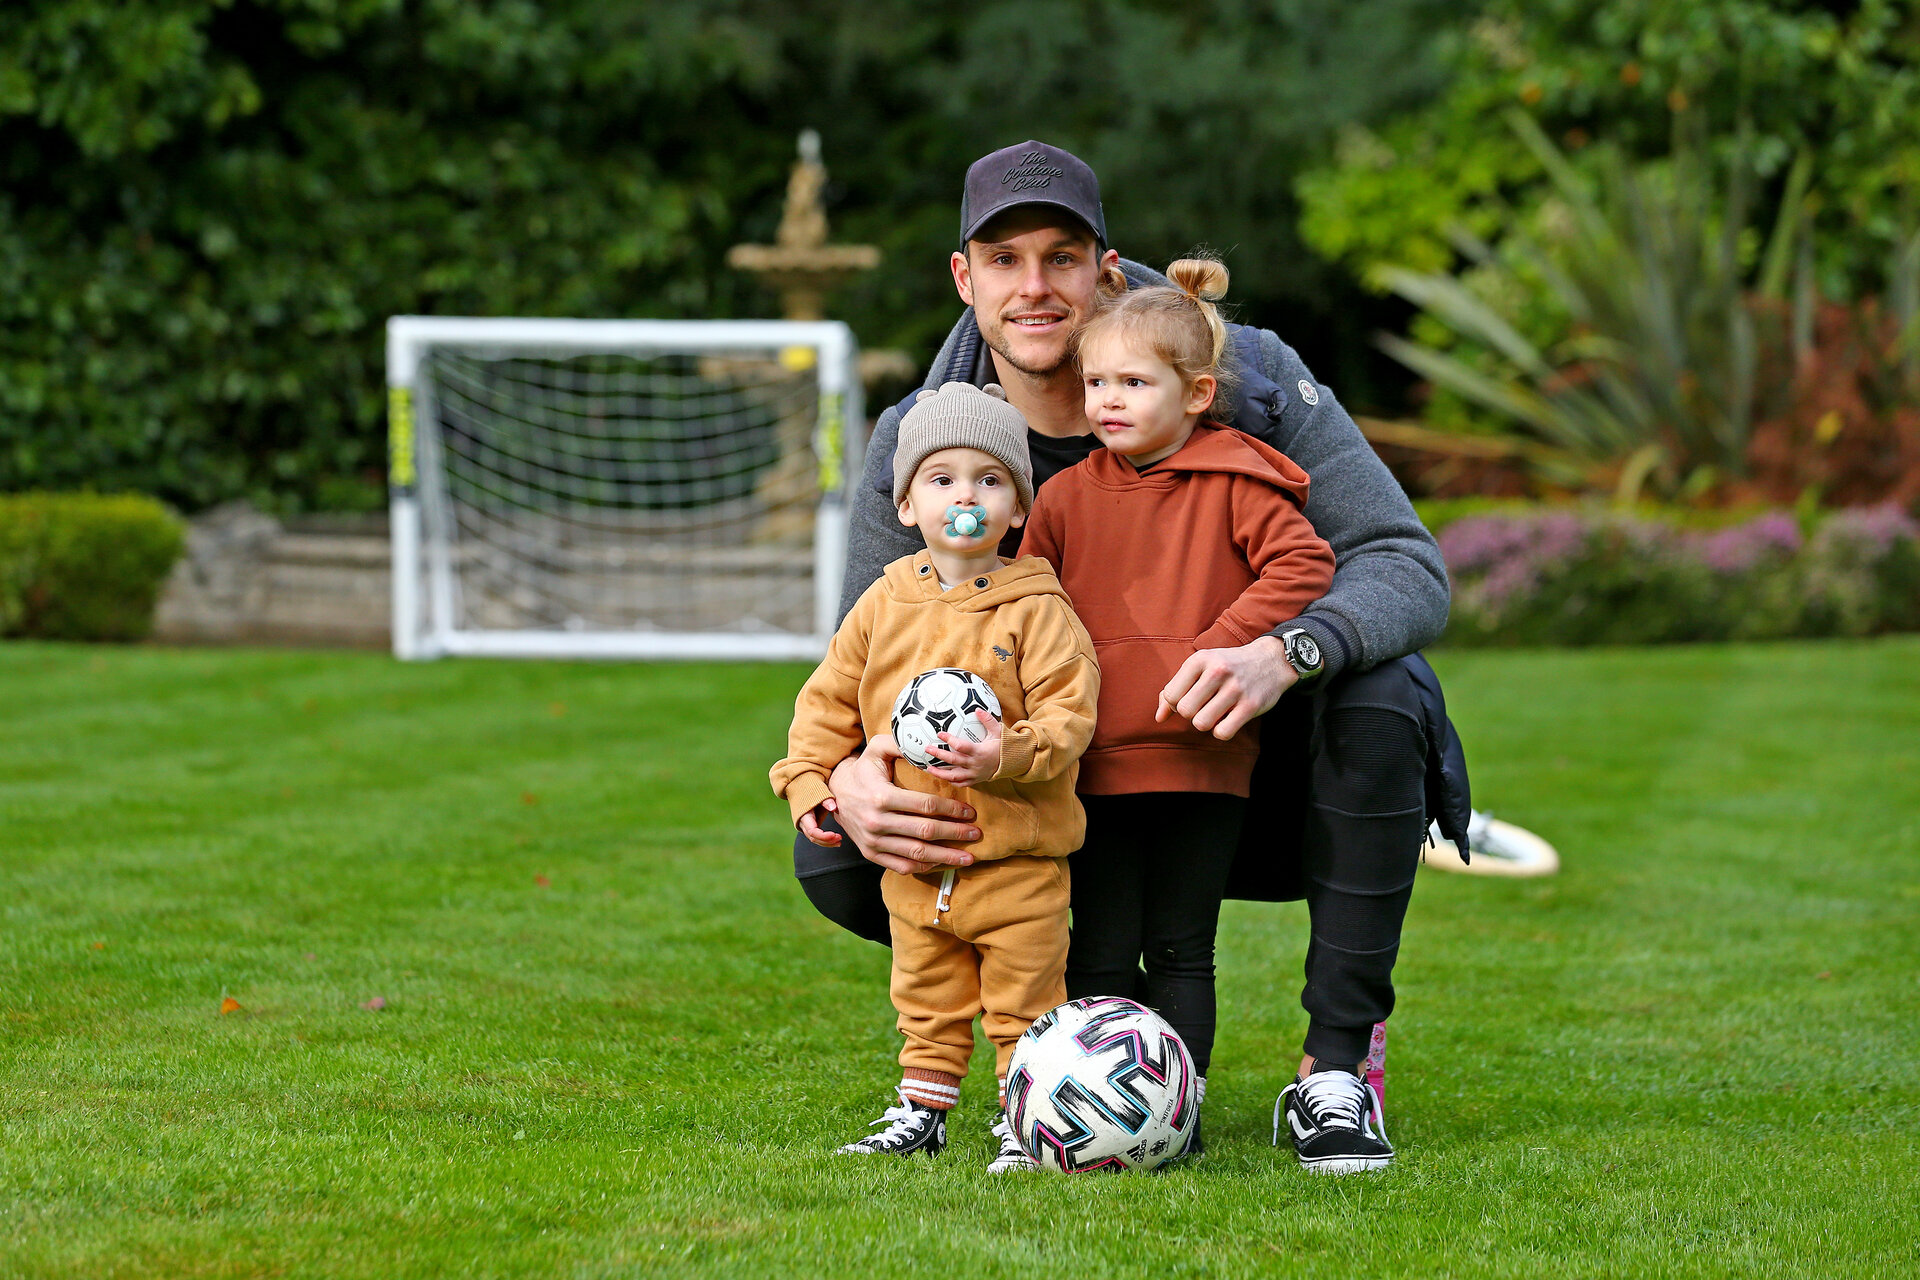 SOUTHAMPTON, ENGLAND - DECEMBER 09: Southampton FC's Alex McCarthy pictured at his home for the club's match day programme, on December 09, 2020 in Southampton, England. (Photo by Matt Watson/Southampton FC via Getty Images)